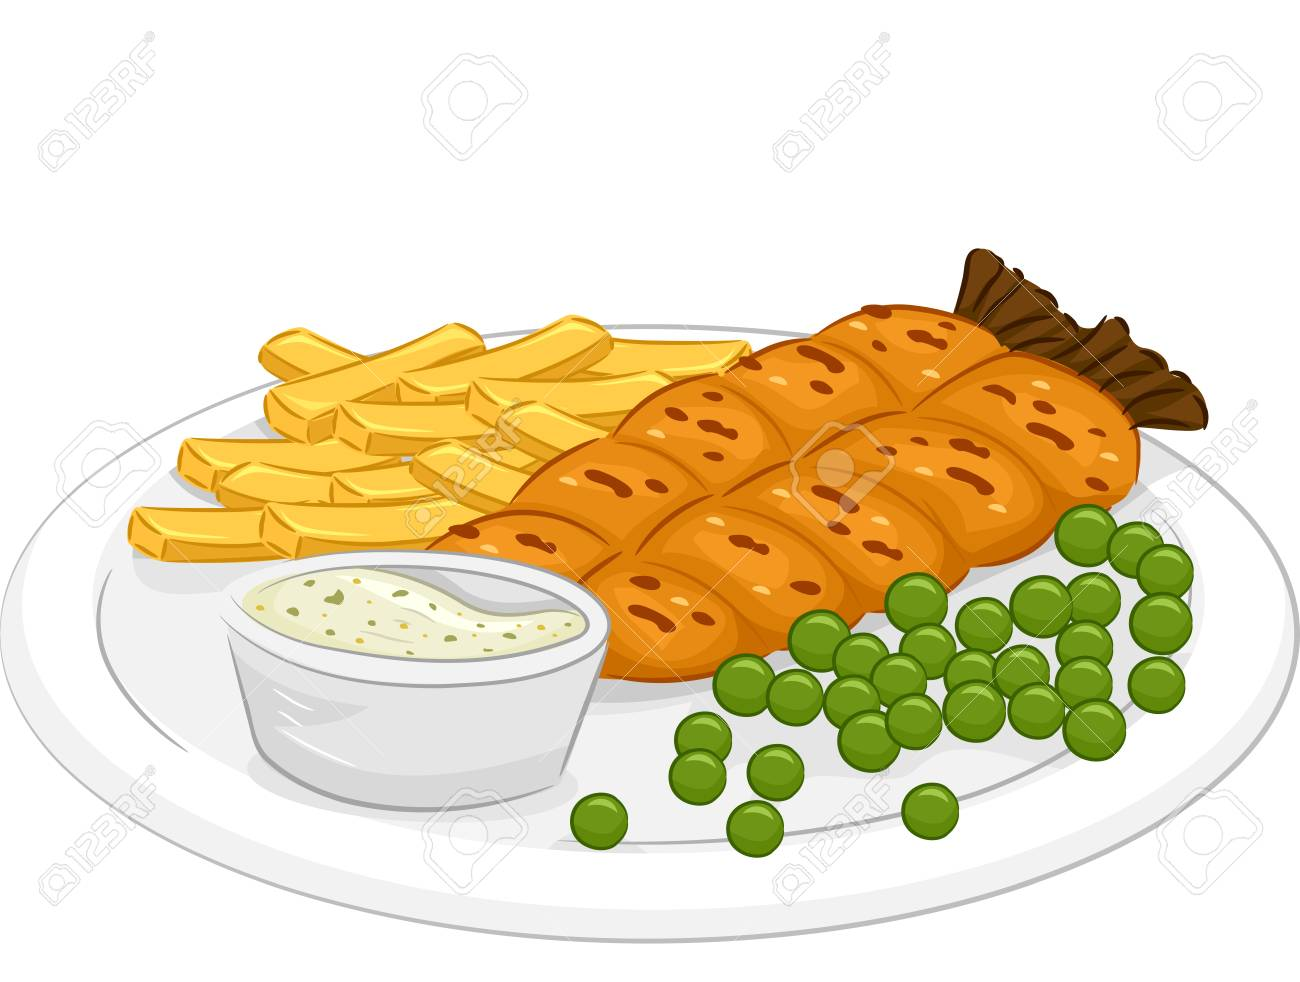 Illustration Featuring a Plate of Fish and Chips.